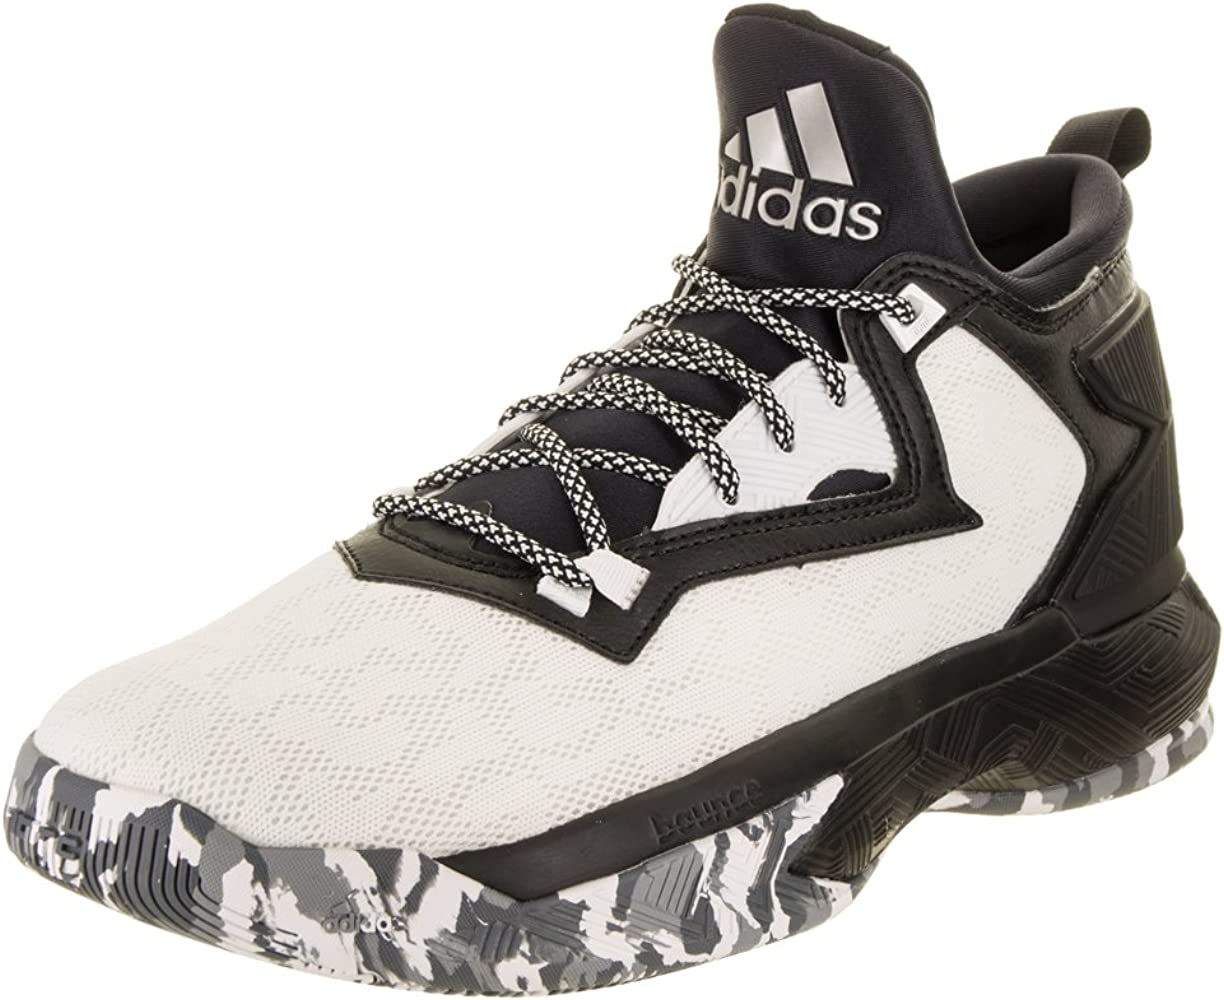 cortar Para editar Campo de minas  adidas dame 2 zapatillas Cheaper Than Retail Price> Buy Clothing,  Accessories and lifestyle products for women & men -